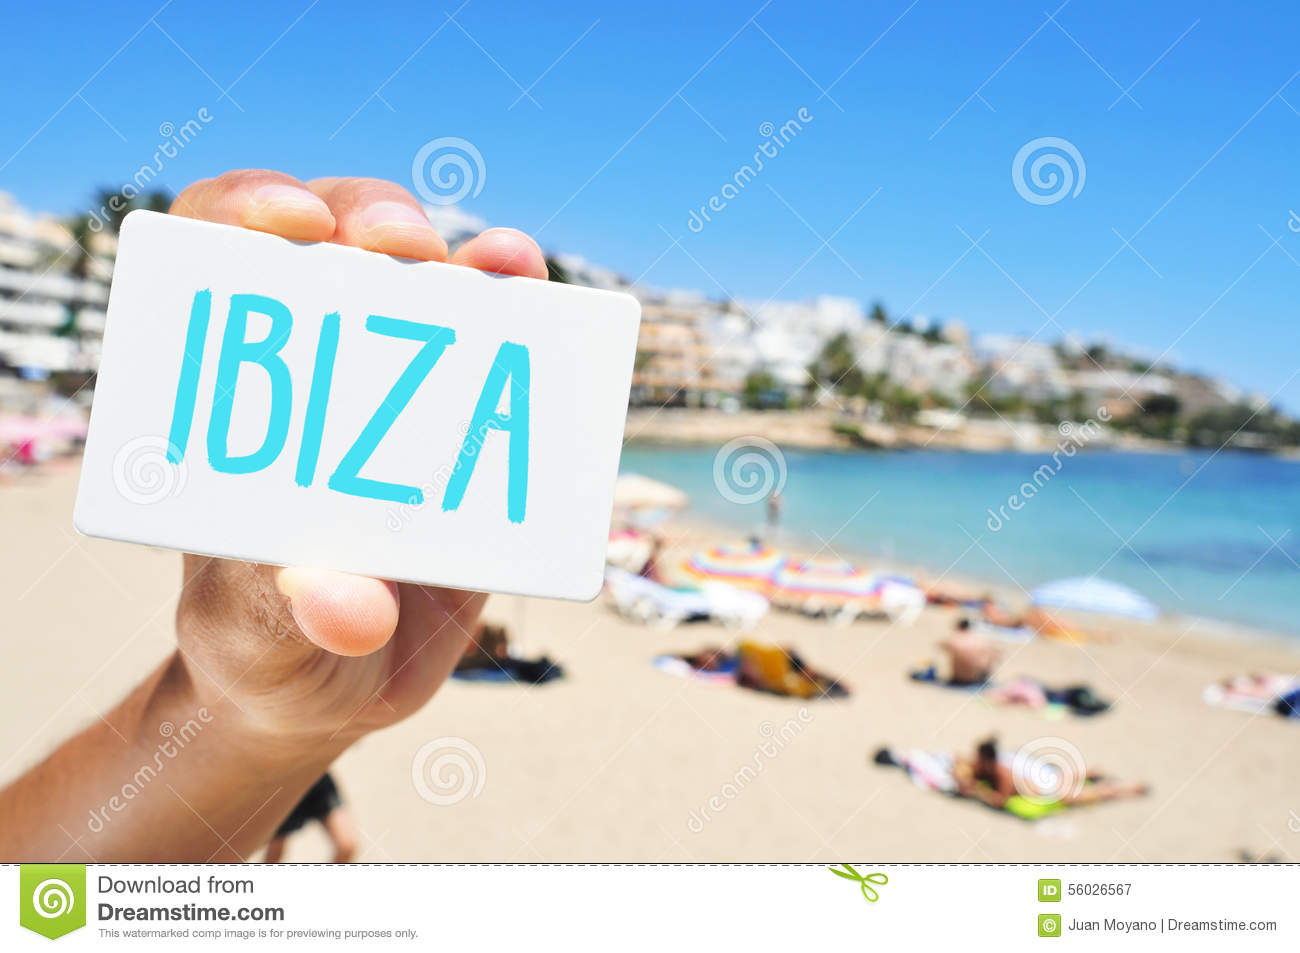 man with a signboard with the word Ibiza, in Ses Figueretes Beach in Ibiza Town, Spain